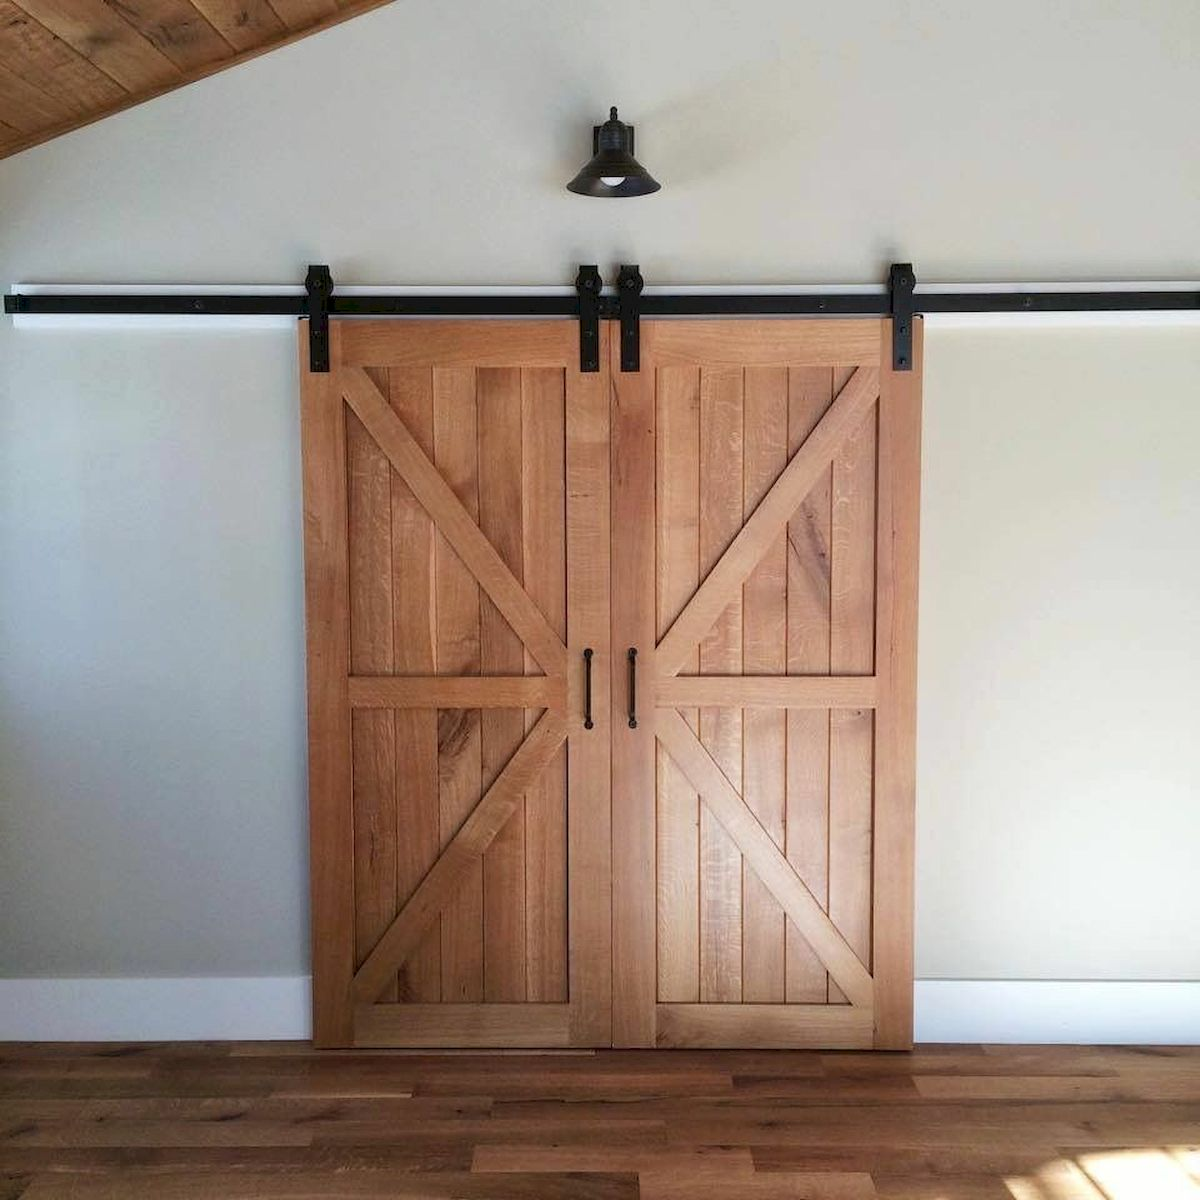 70 Rustic Home Decor Ideas for Doors and Windows (37)